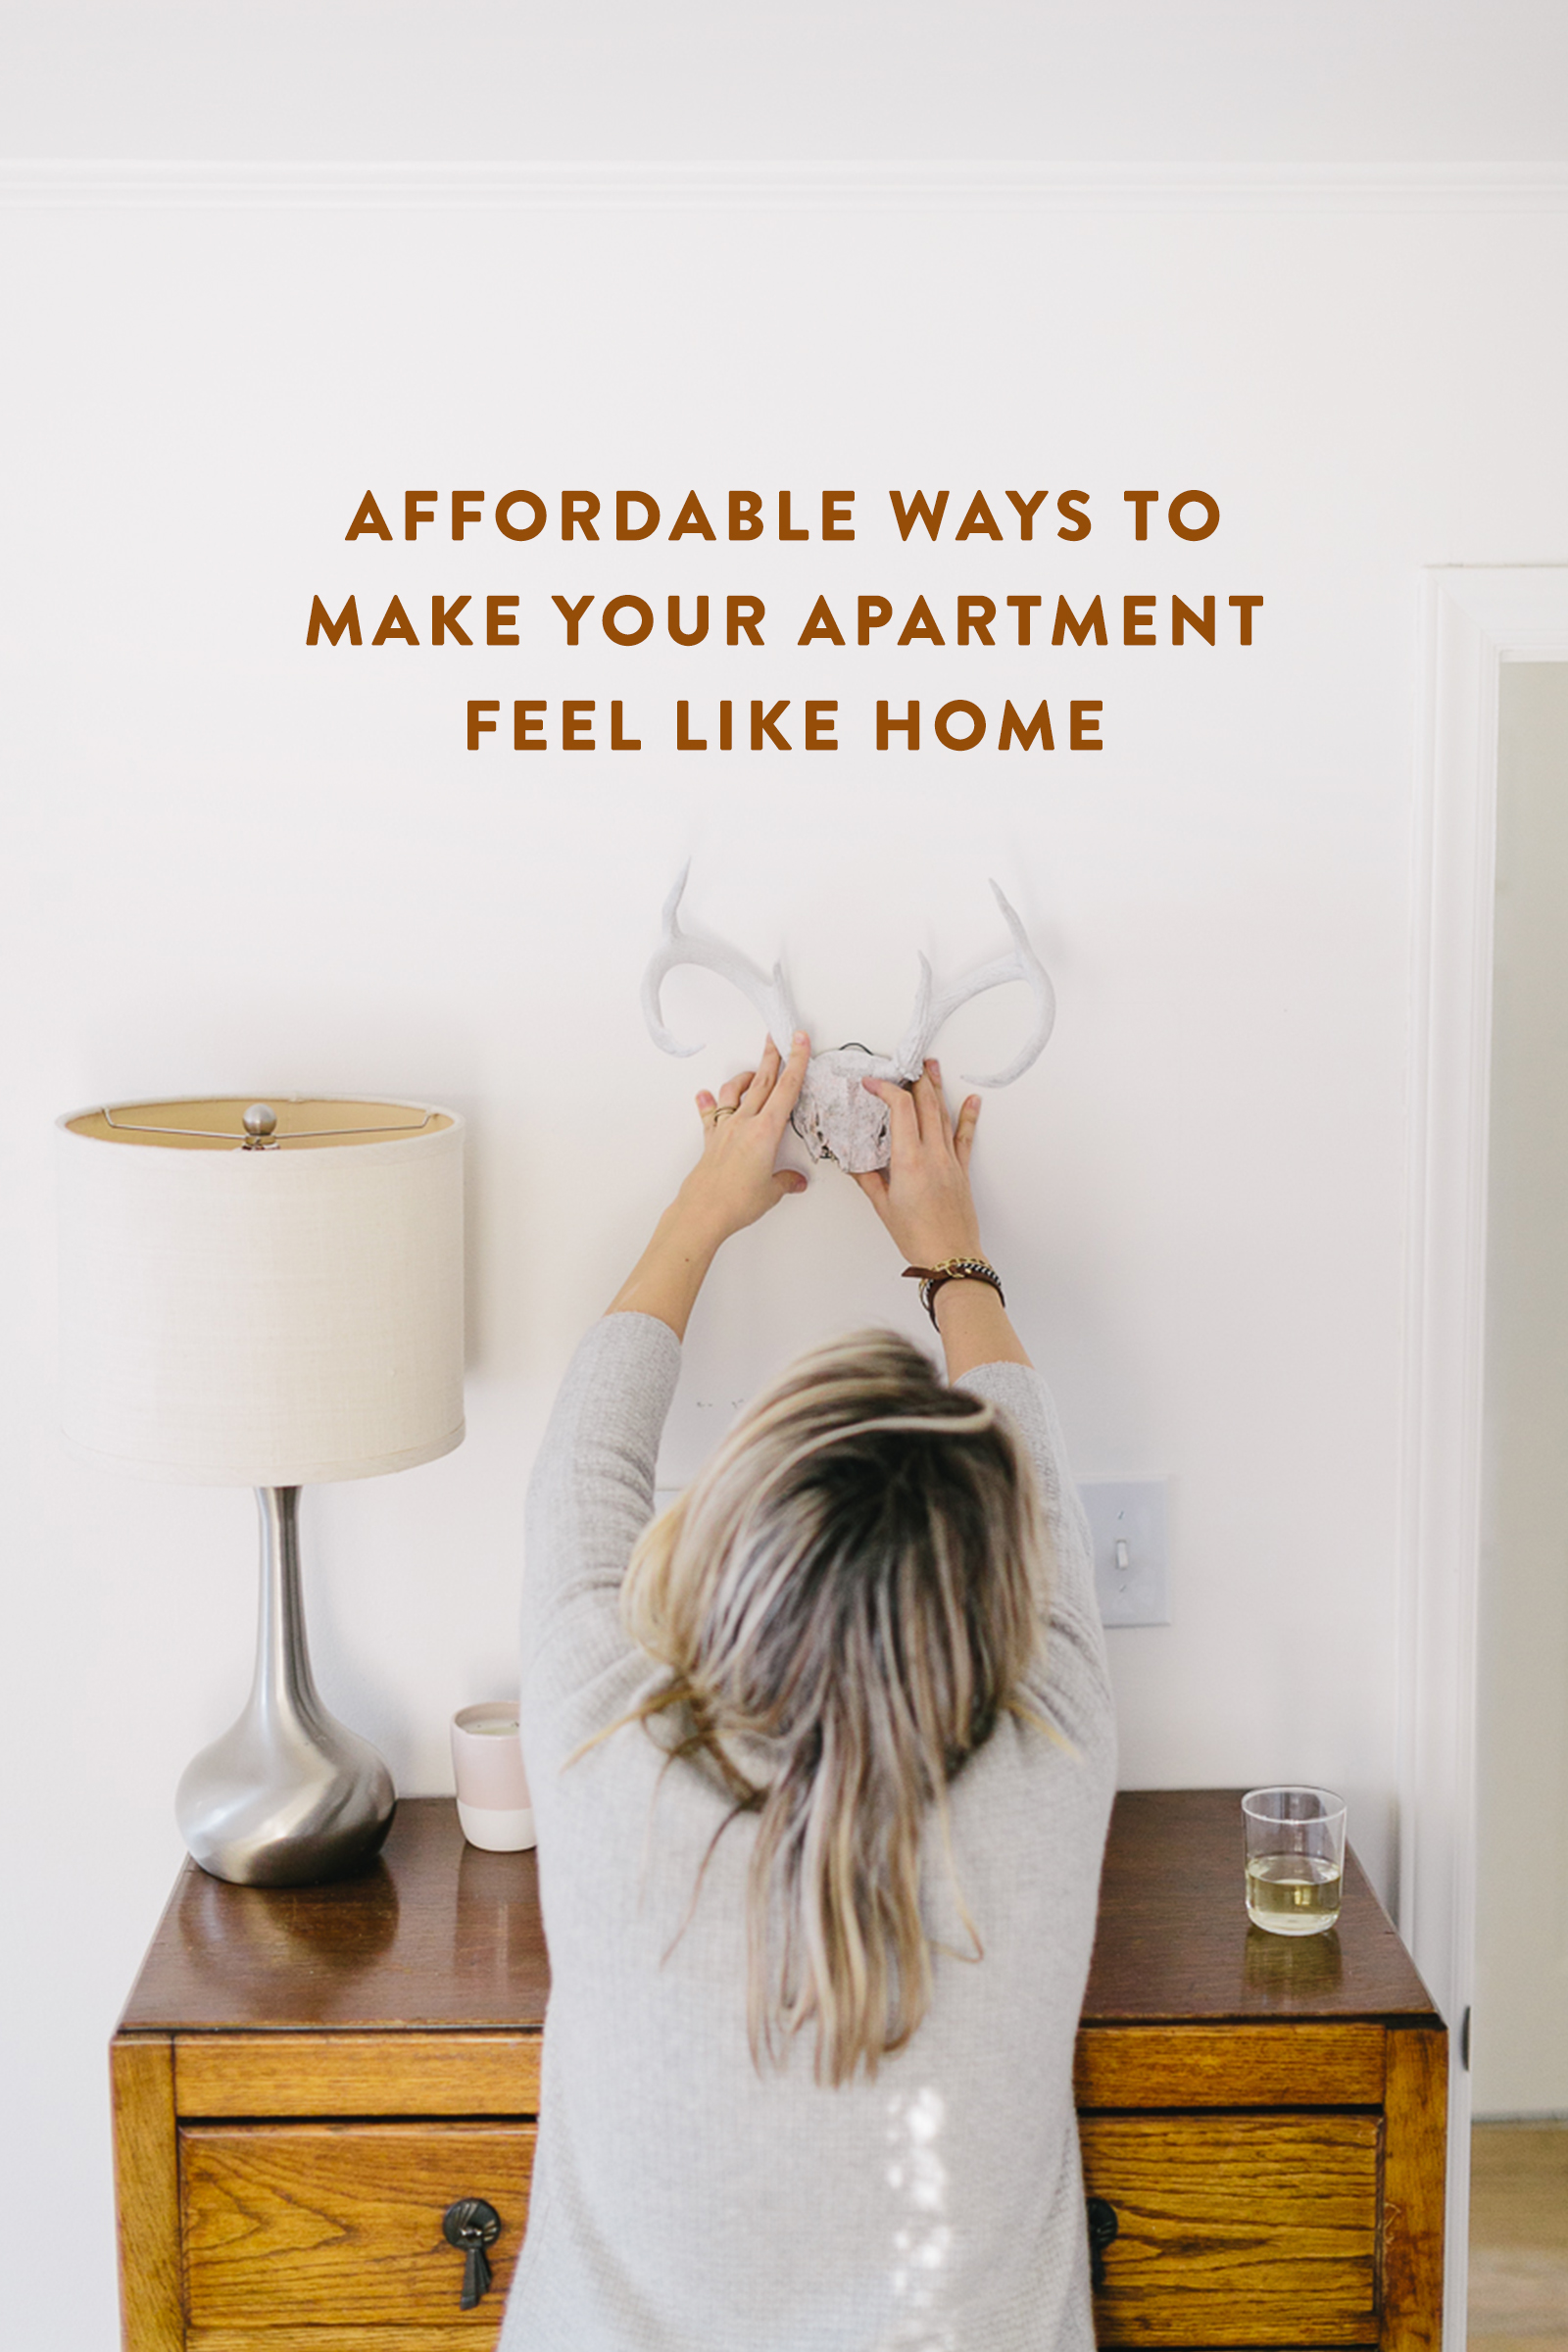 5 Affordable Ways To Make Your Apartment Feel Like Home